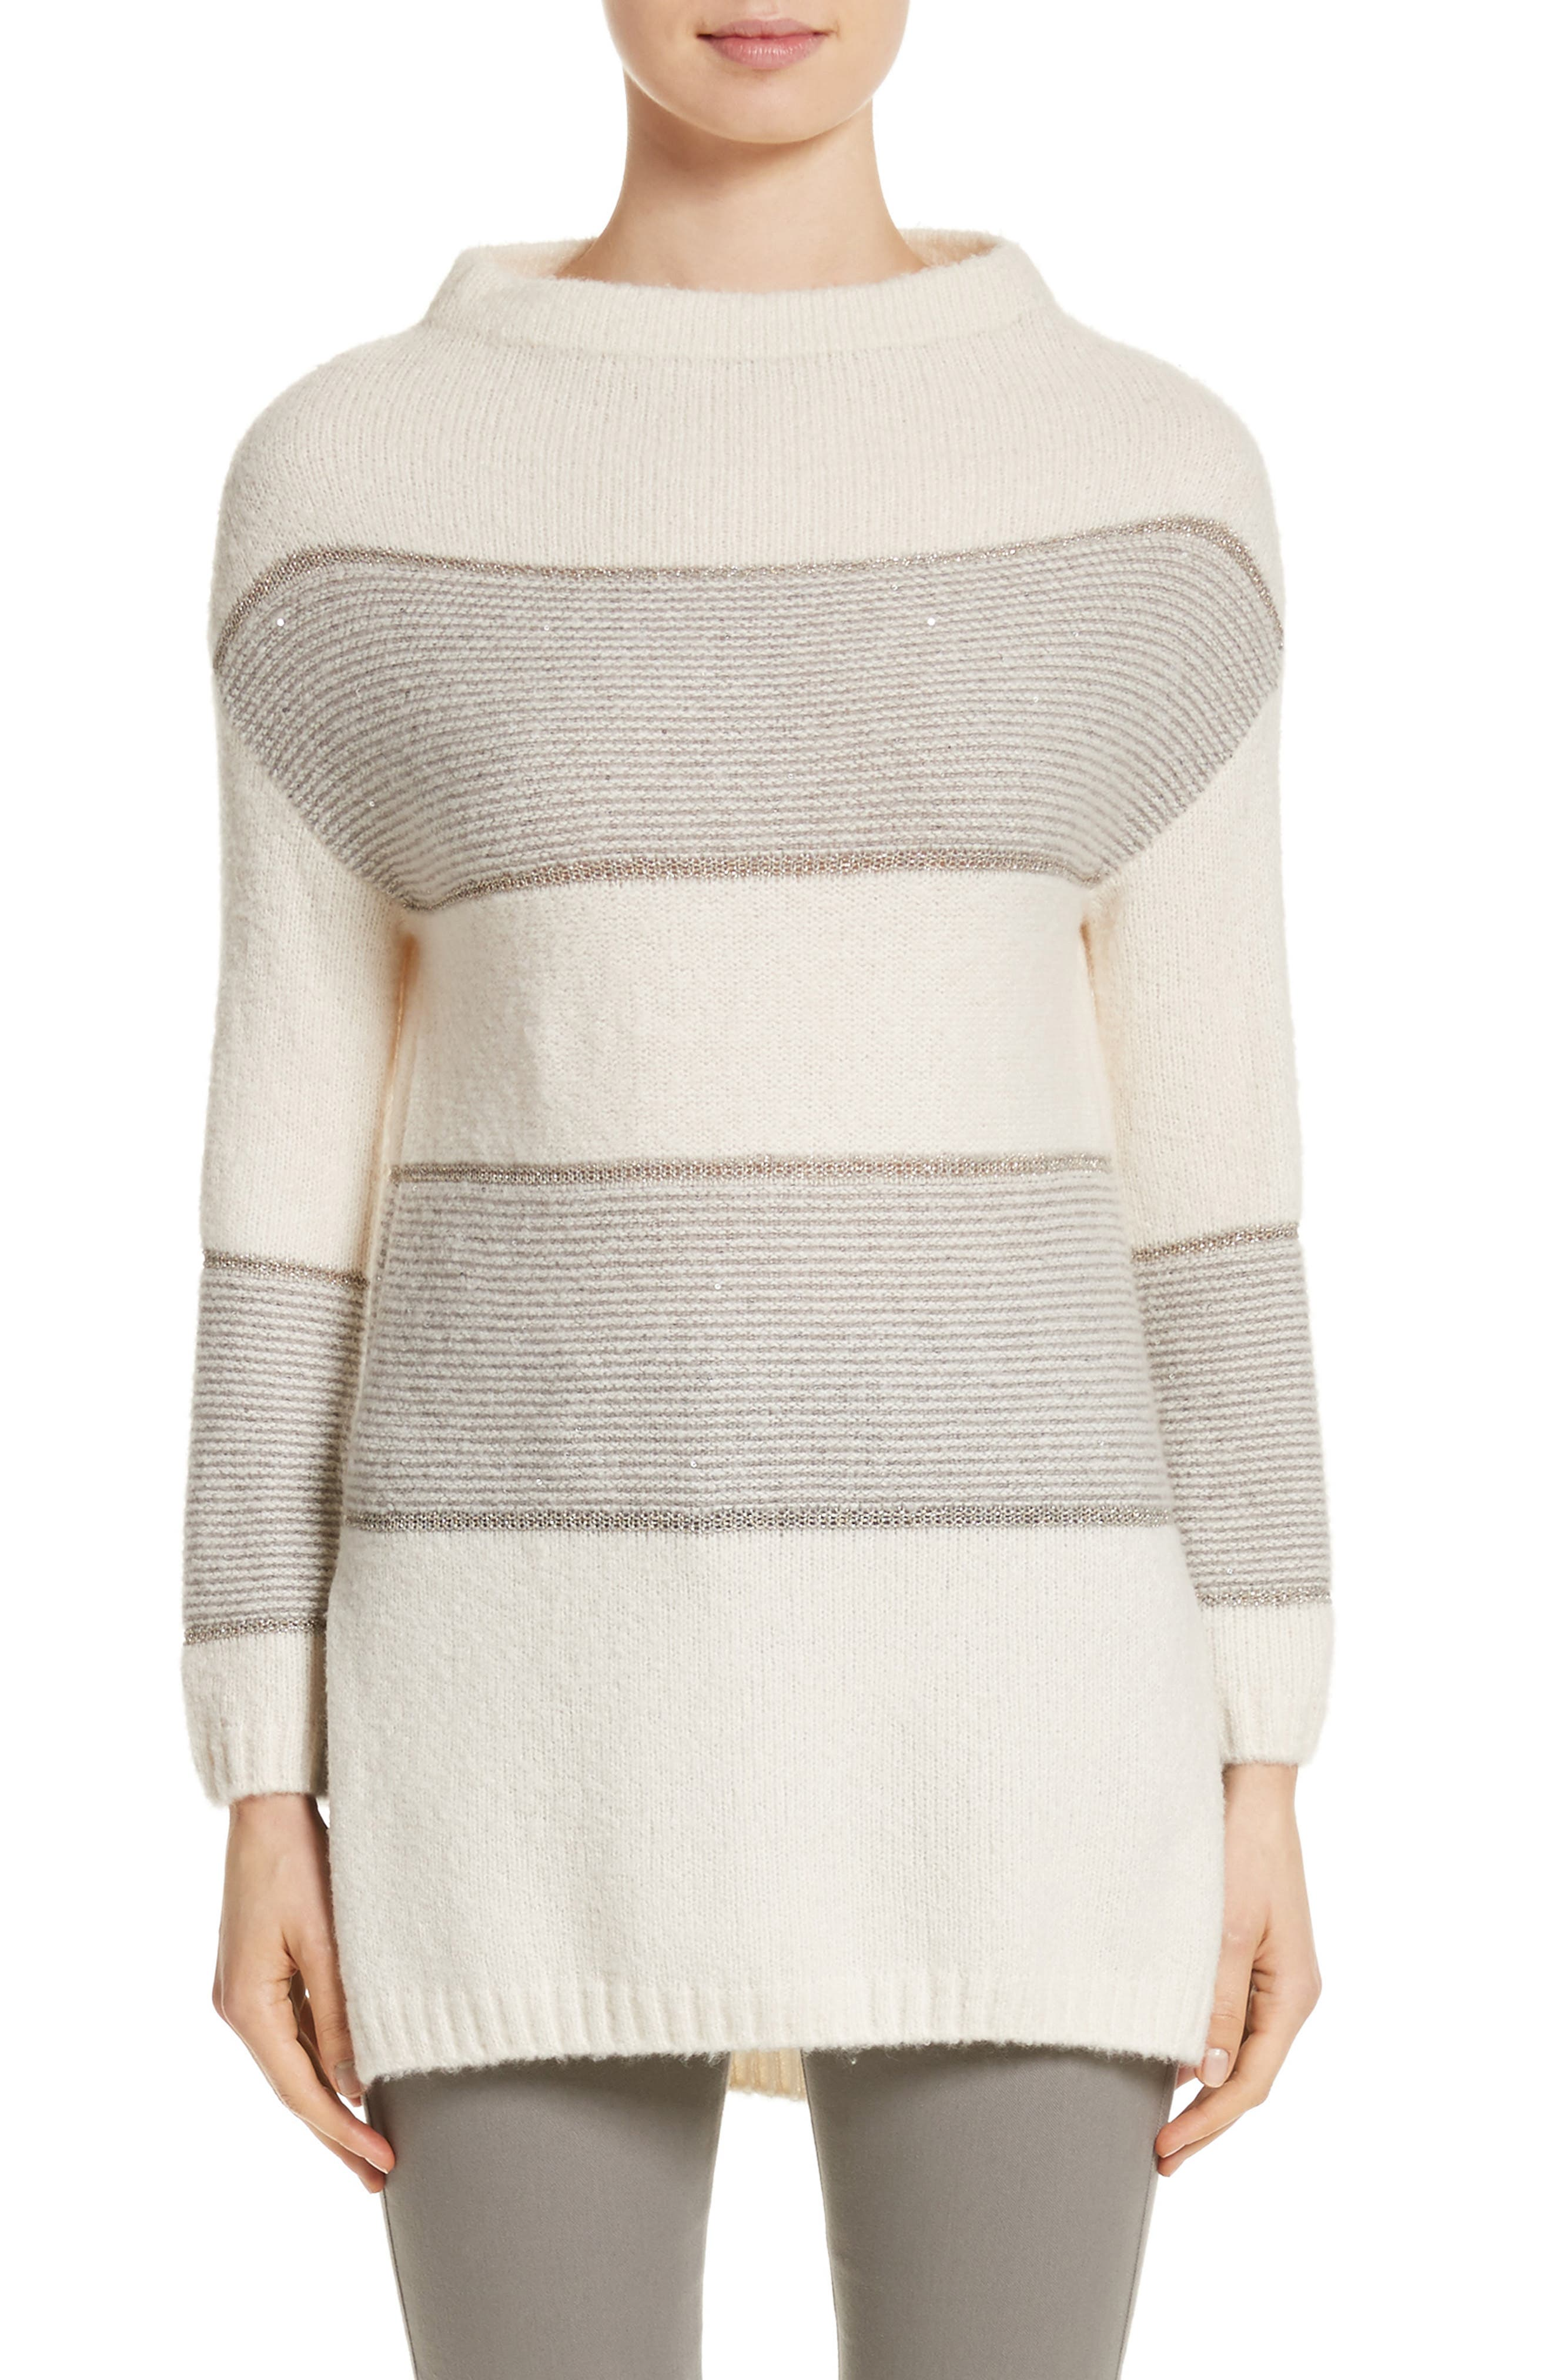 Alternate Image 1 Selected - St. John Collection Links Knit Funnel Neck Sweater